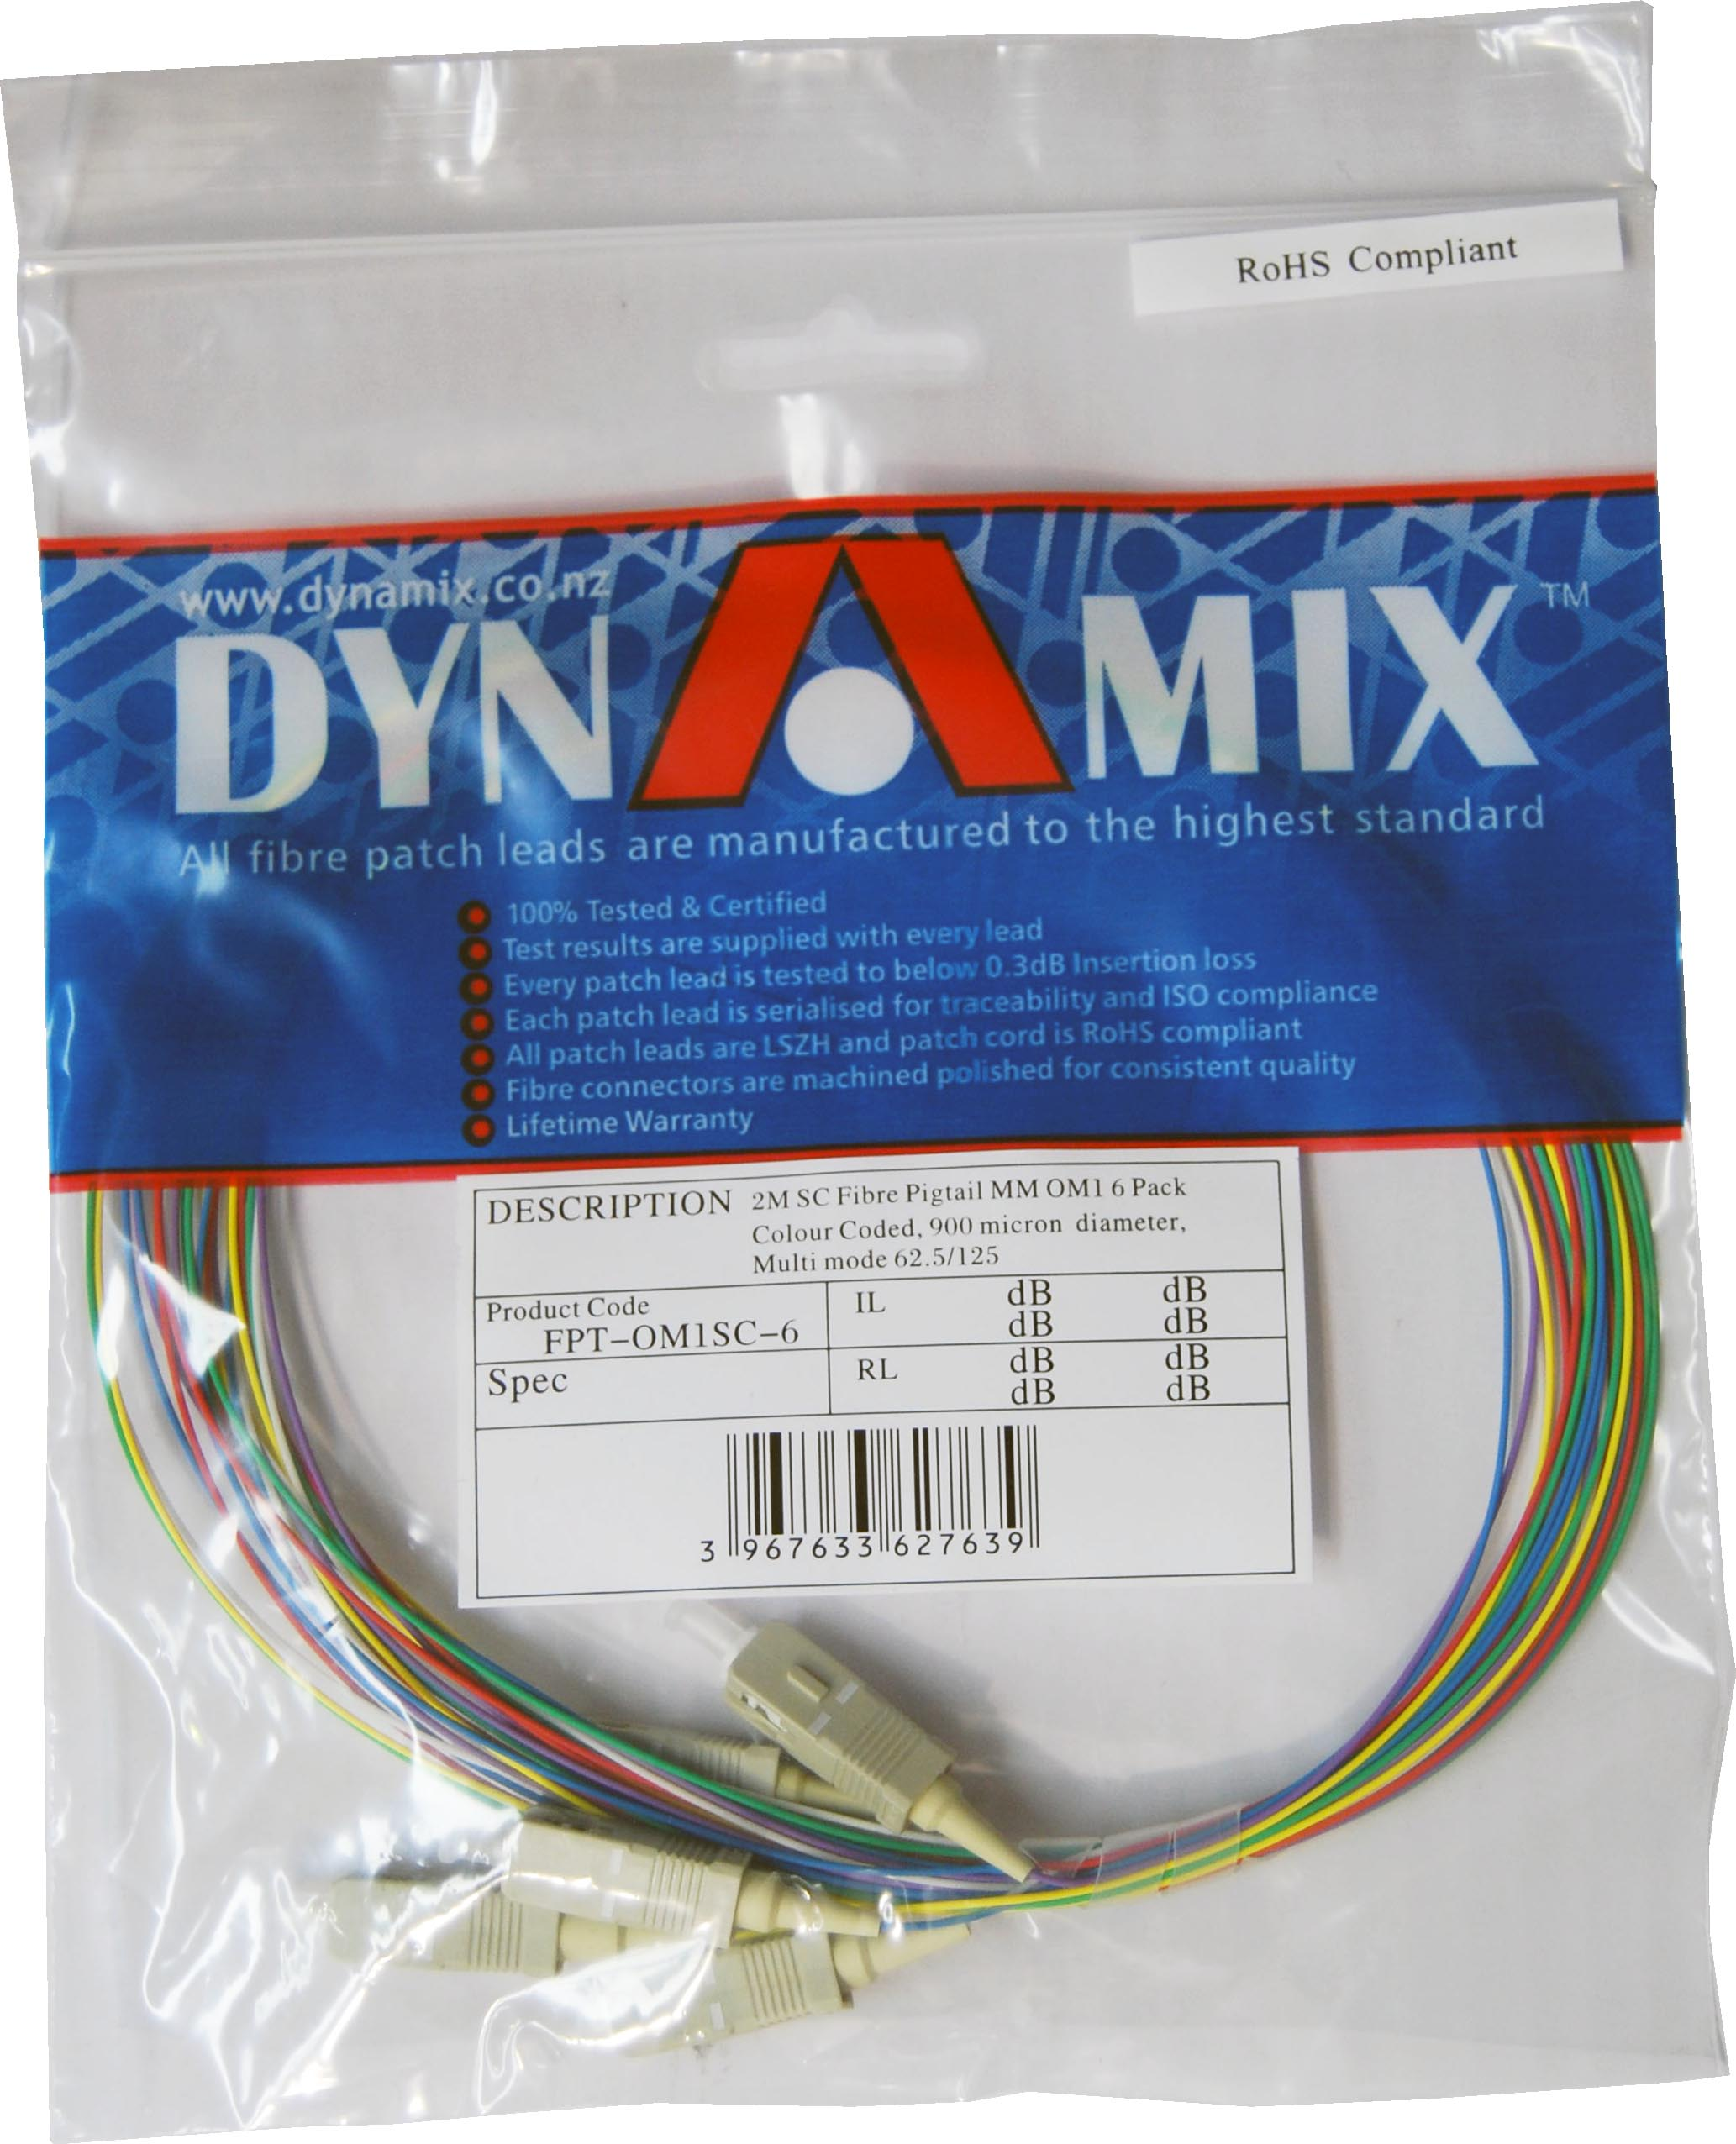 DYNAMIX 2M SC Pigtail OM1 6 Pack Colour Coded, 900um Multimode Fibre, Tight buffer